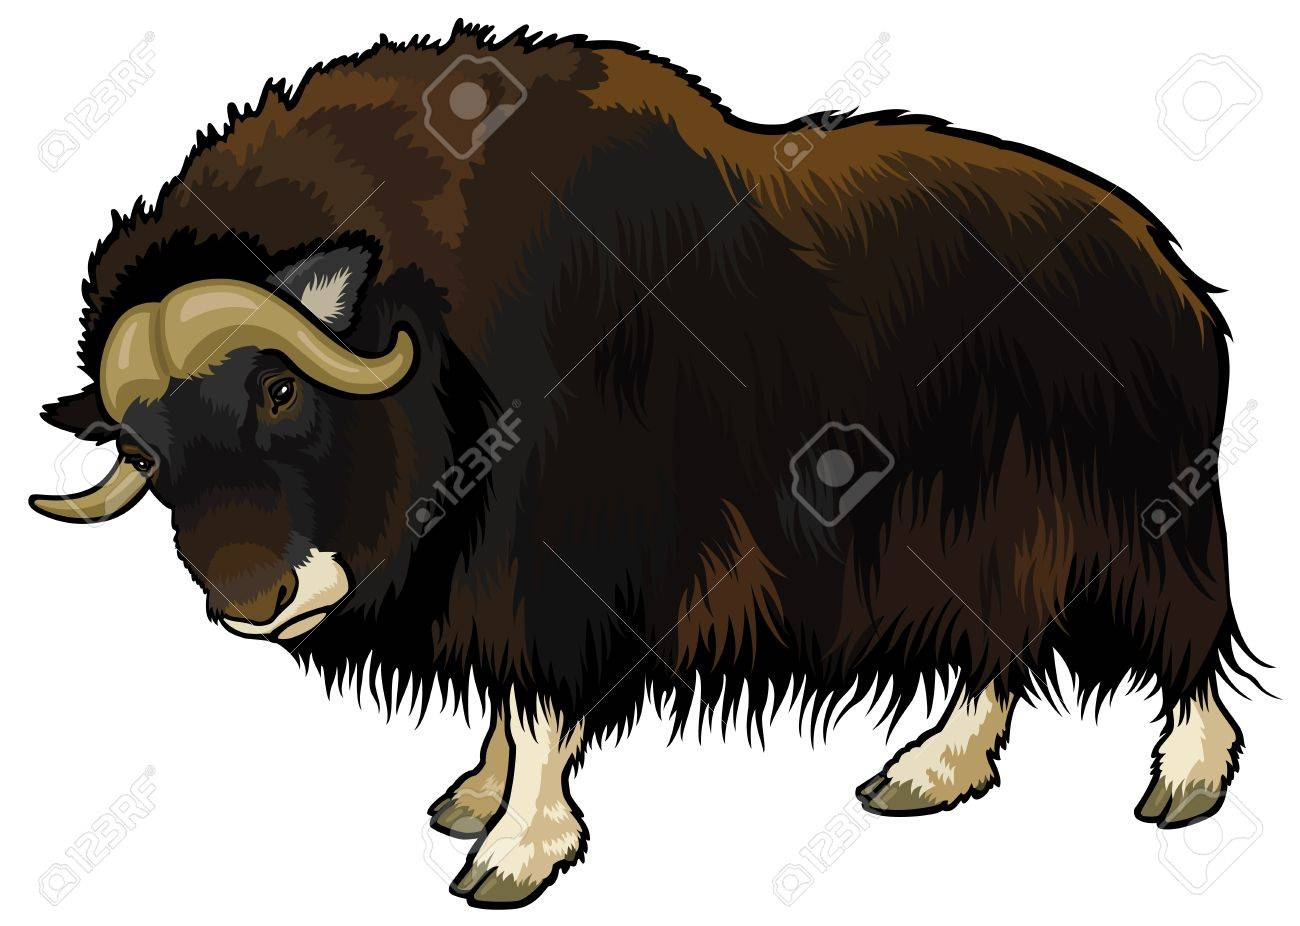 muskox,ovibos moschatus,animal of arctic,side view picture isolated on white background Stock Vector - 18023955